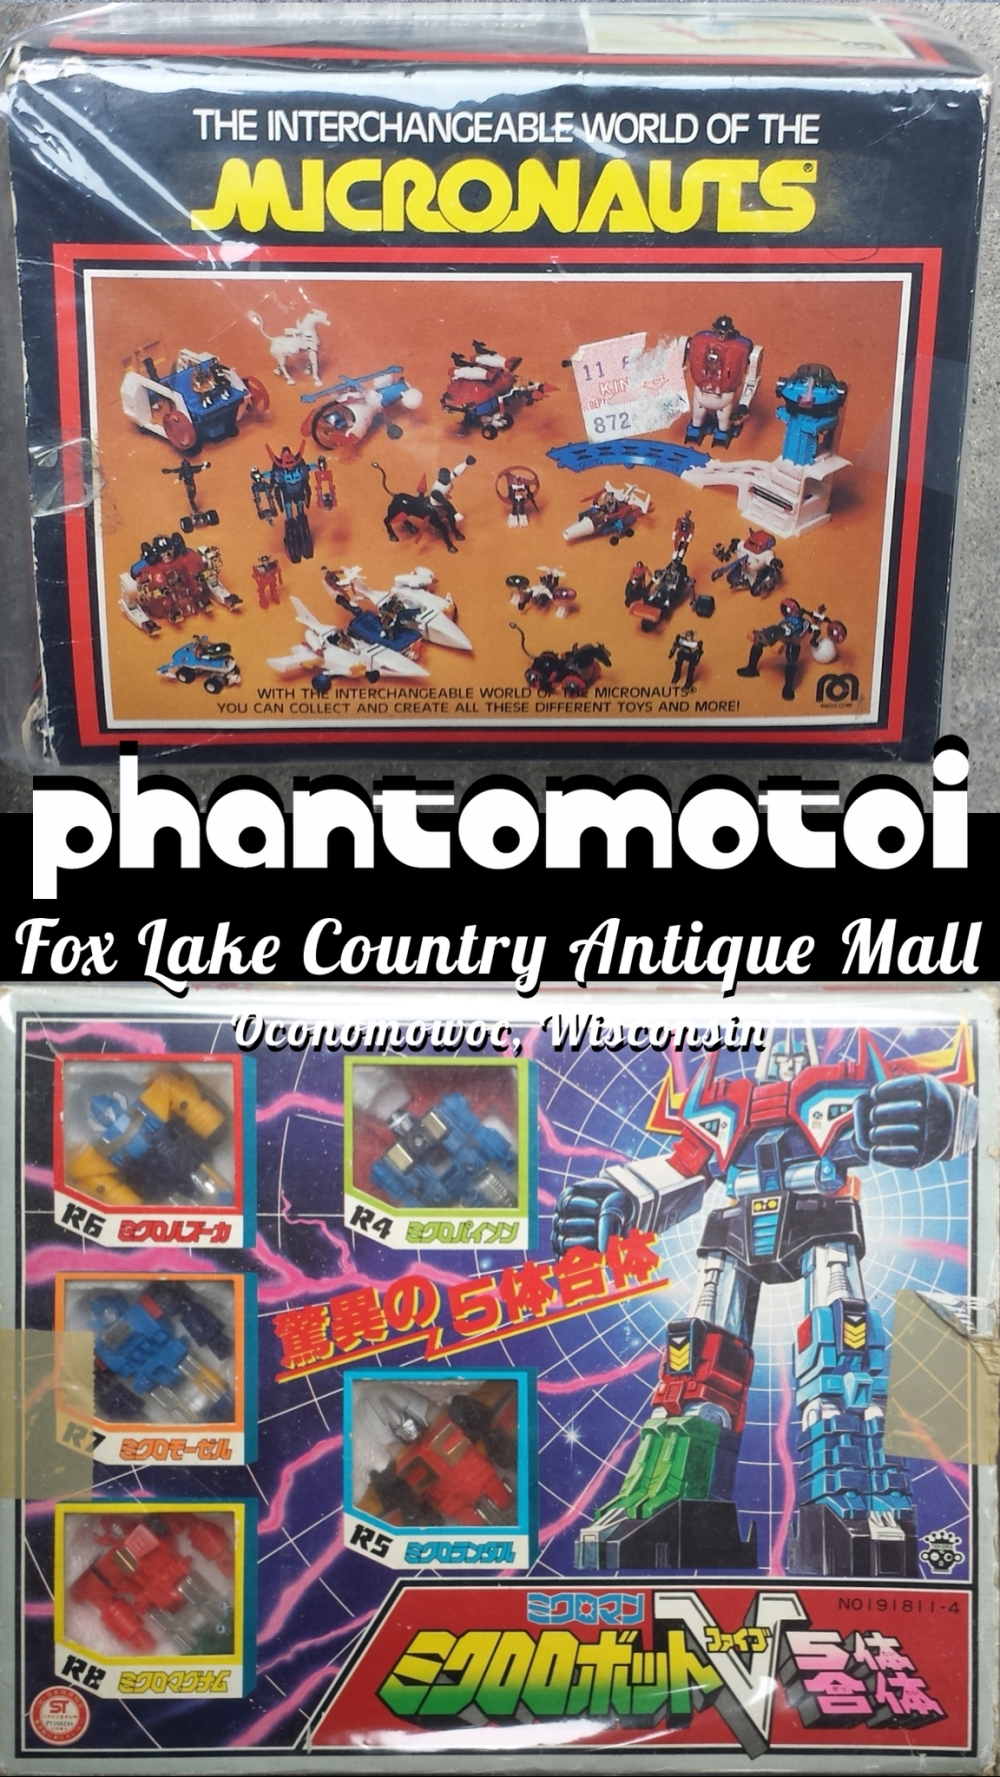 PHANTOMOTOI_MALL_Boxes_1100w_BLOG